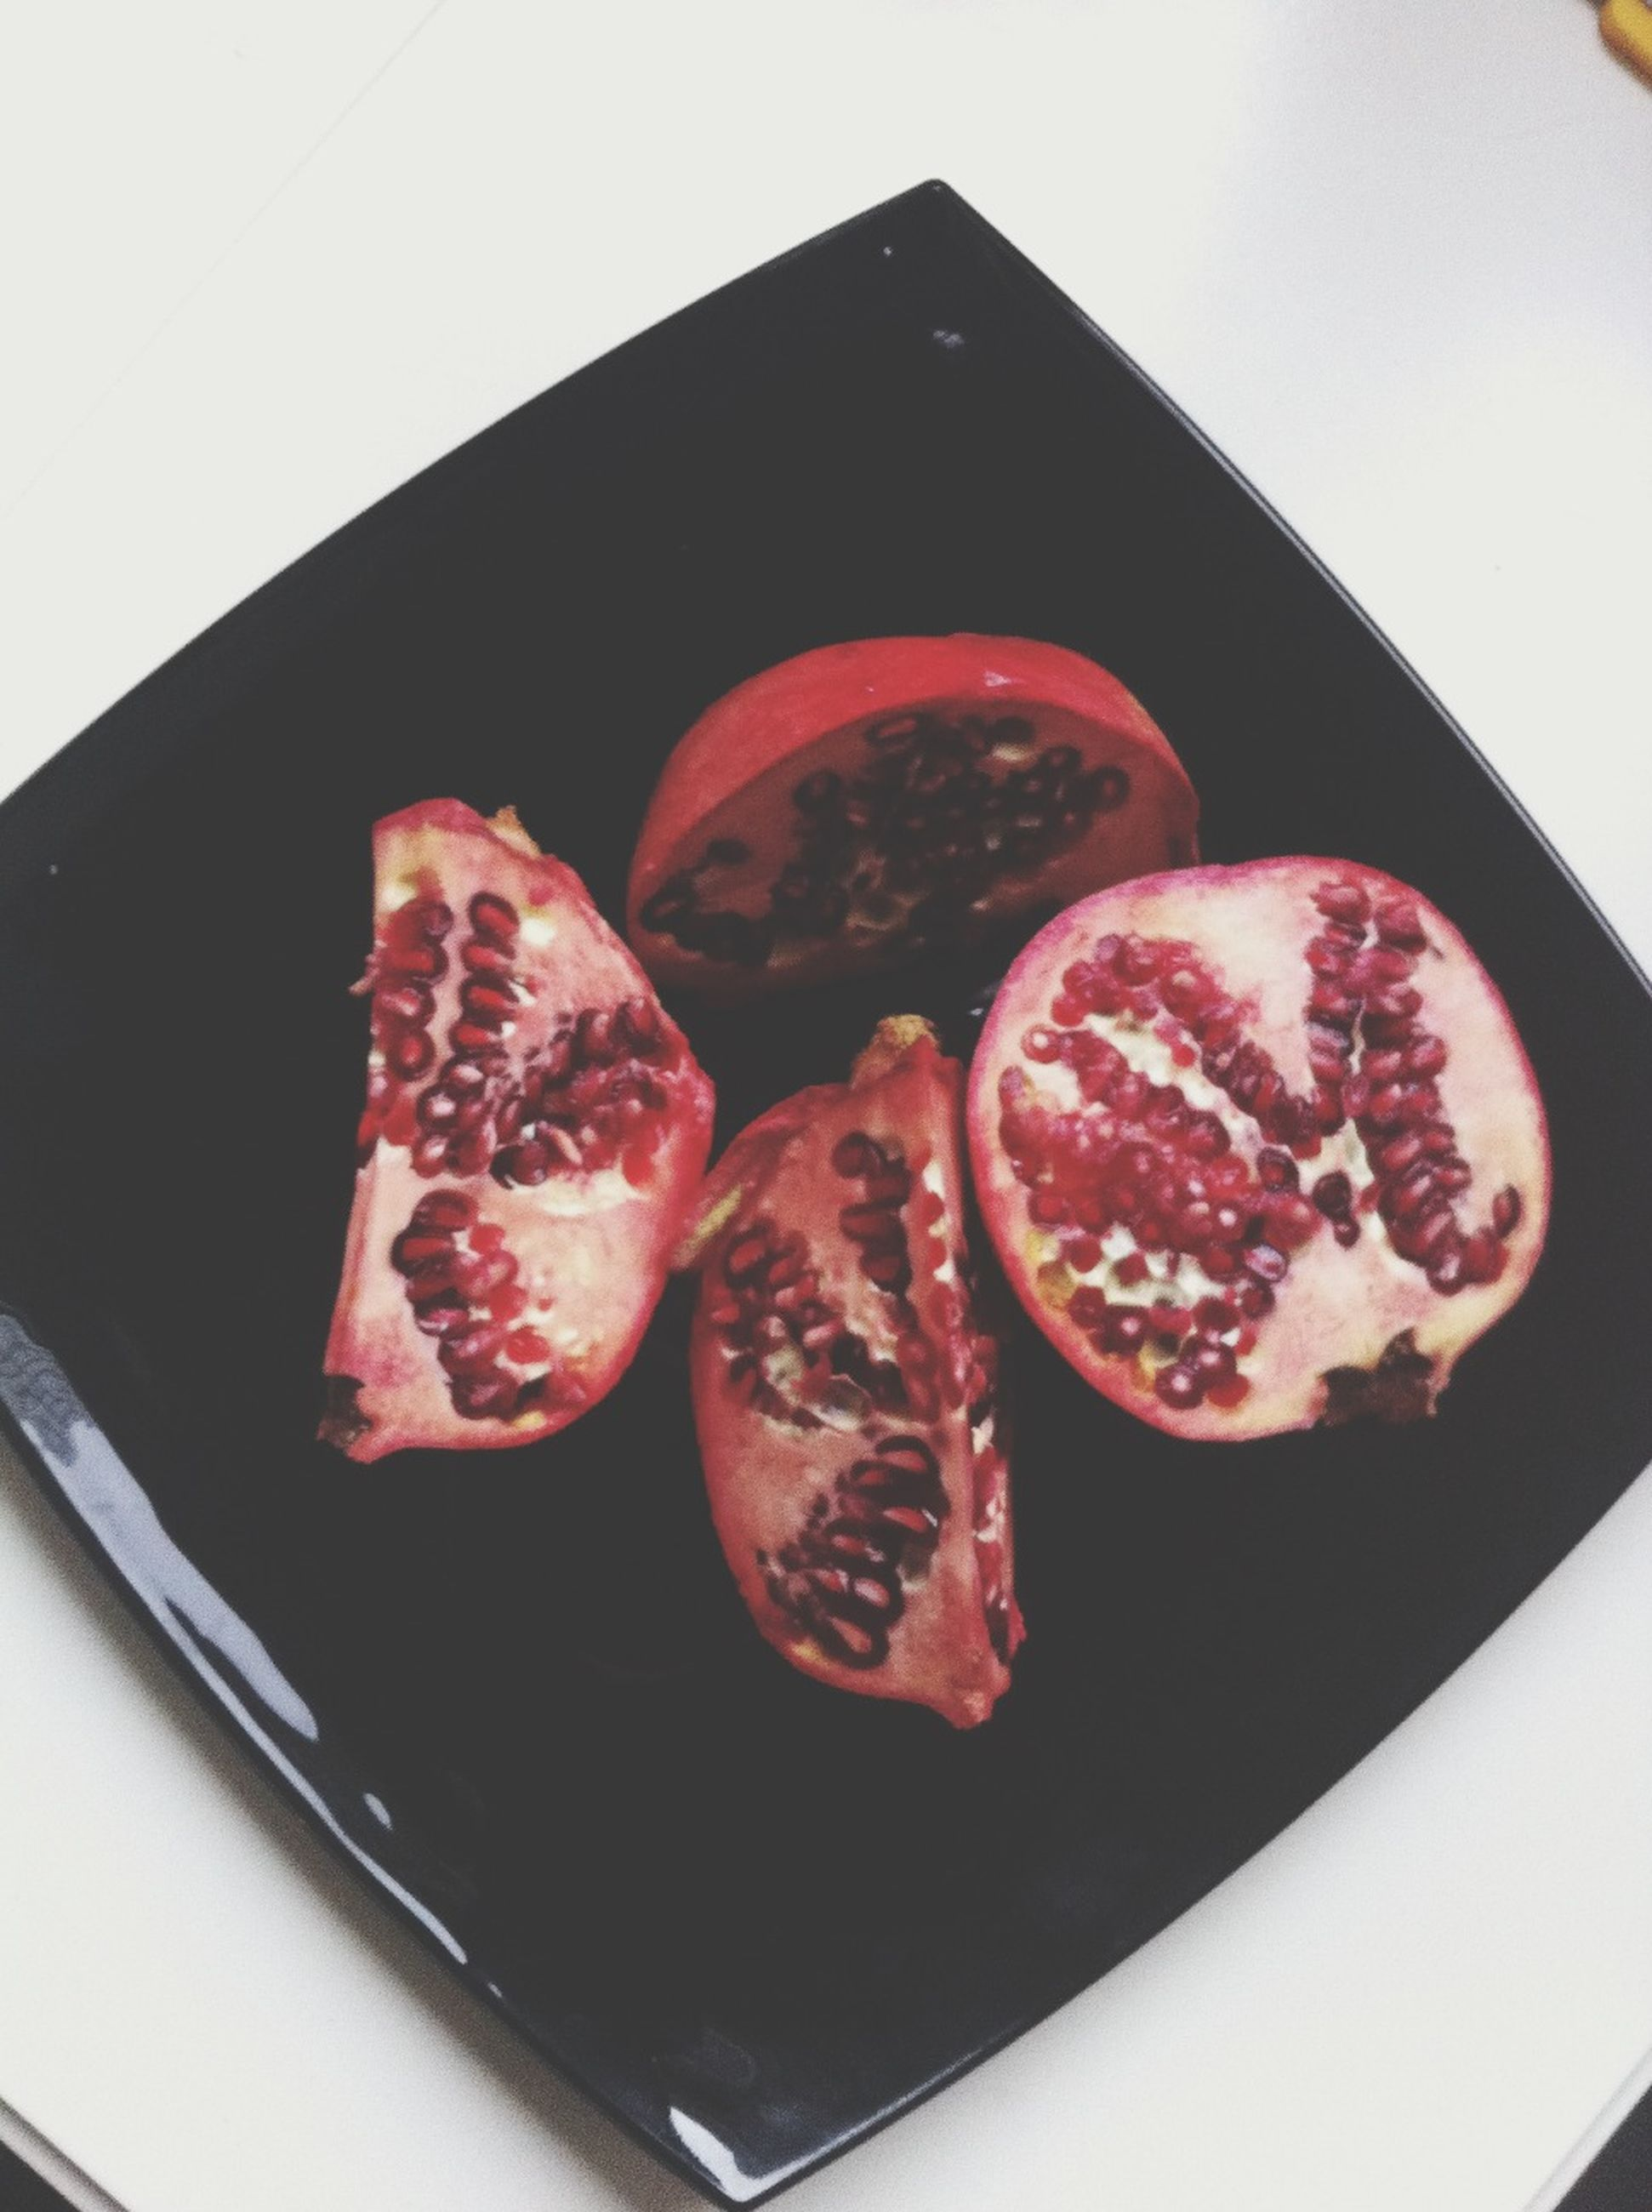 food and drink, food, freshness, indoors, sweet food, still life, ready-to-eat, dessert, indulgence, close-up, plate, temptation, red, unhealthy eating, strawberry, fruit, cake, high angle view, table